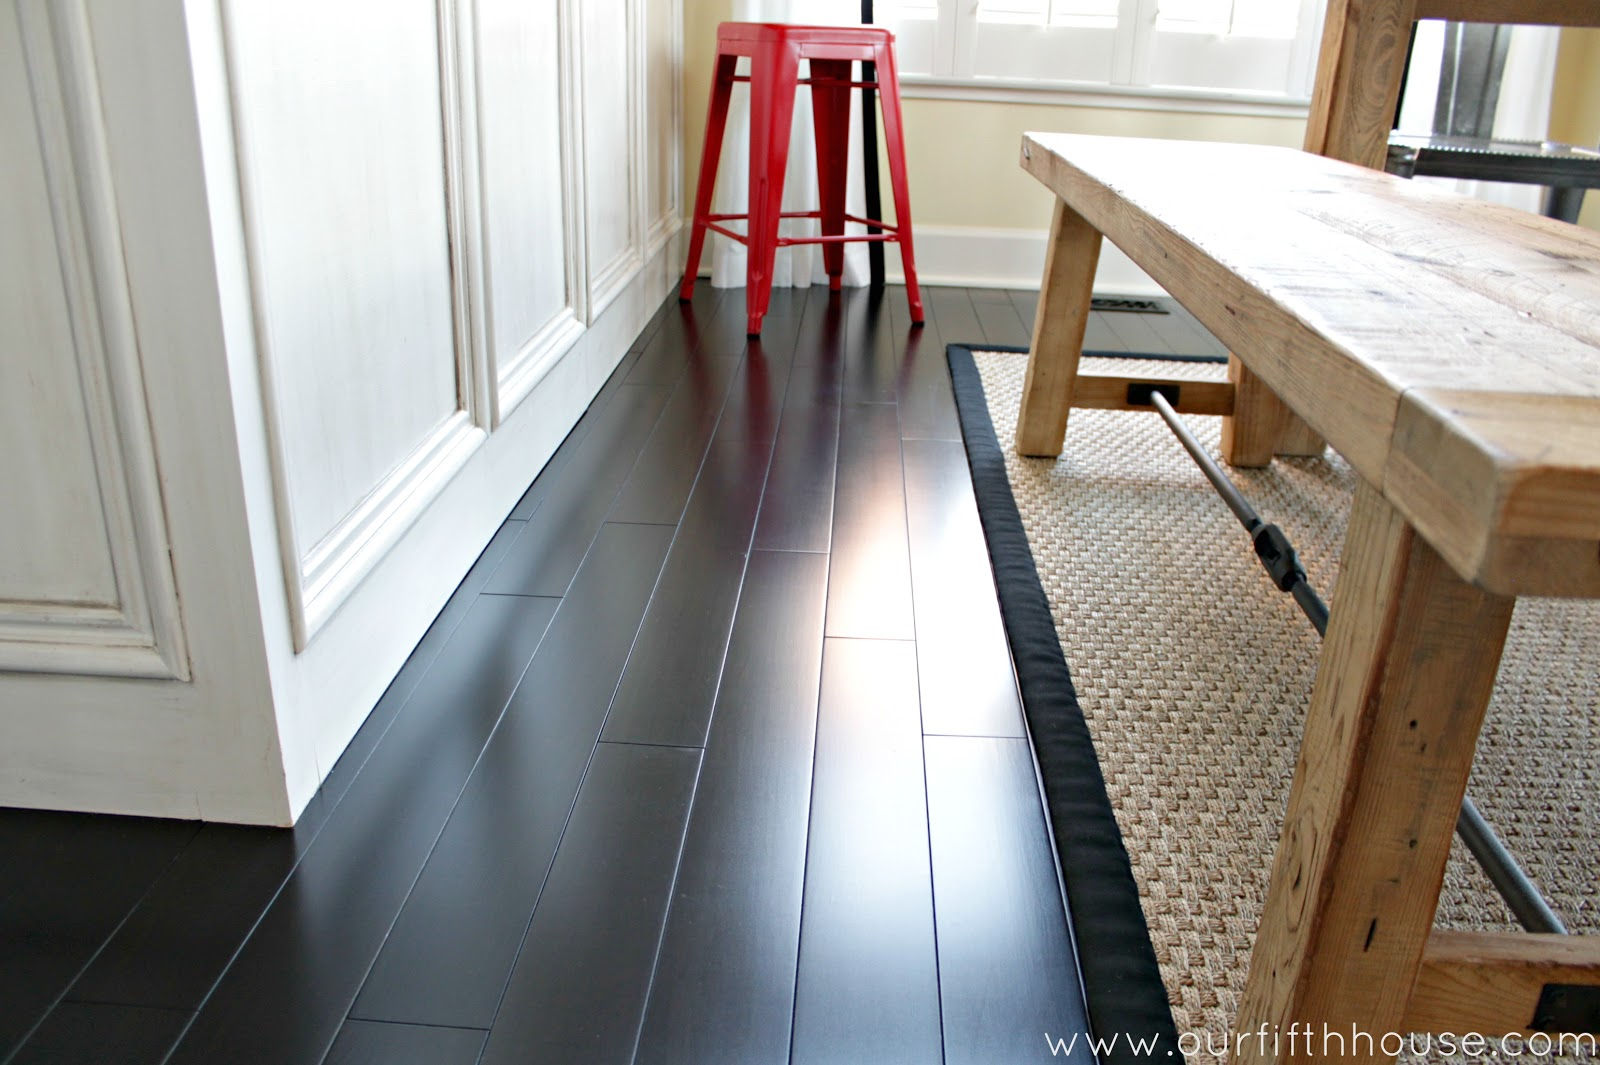 Design Dark Hardwood Floors how to clean dark wood floors our fifth house floor maintenance